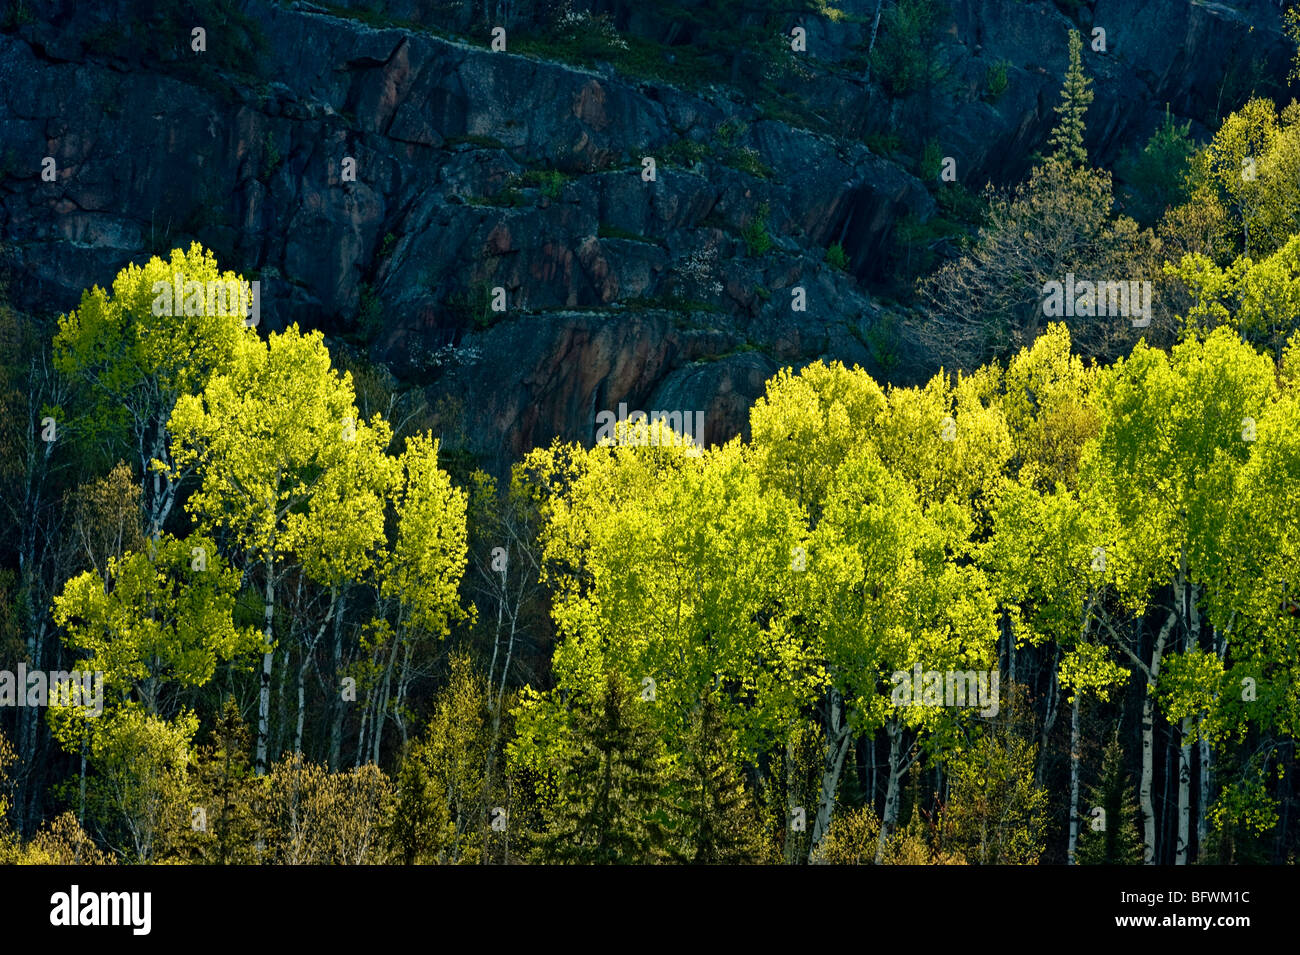 Aspens and birches with emerging foliage at base of cliff overlooking Onaping River, Greater Sudbury, Ontario, Canada - Stock Image